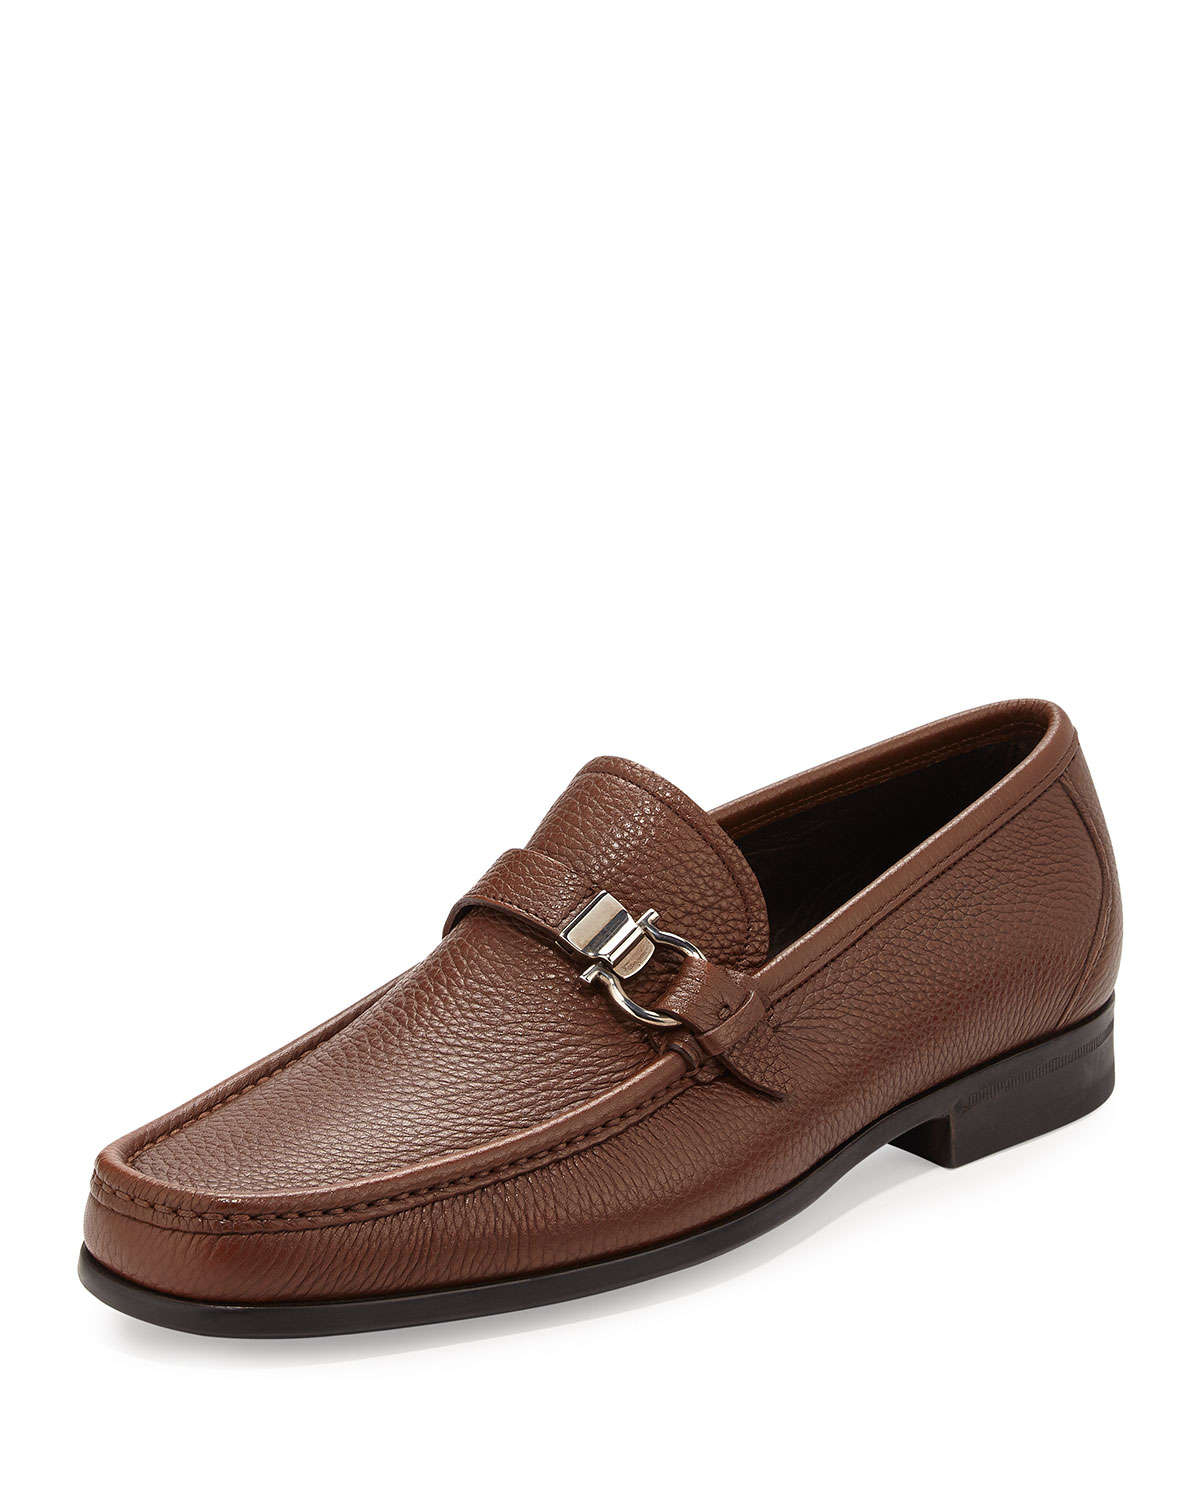 SALVATORE FERRAGAMO MEN'S SHOES, SNEAKERS, LOAFERS, AND SLIP ON SHOES. Step out in style with Salvatore Ferragamo men's shoes. Ranging from classic loafers handcrafted from the finest Italian leather to cool and casual sneakers for weekend activities, our collection of shoes from Salvatore Ferragamo caters to your keen sense of fashion.